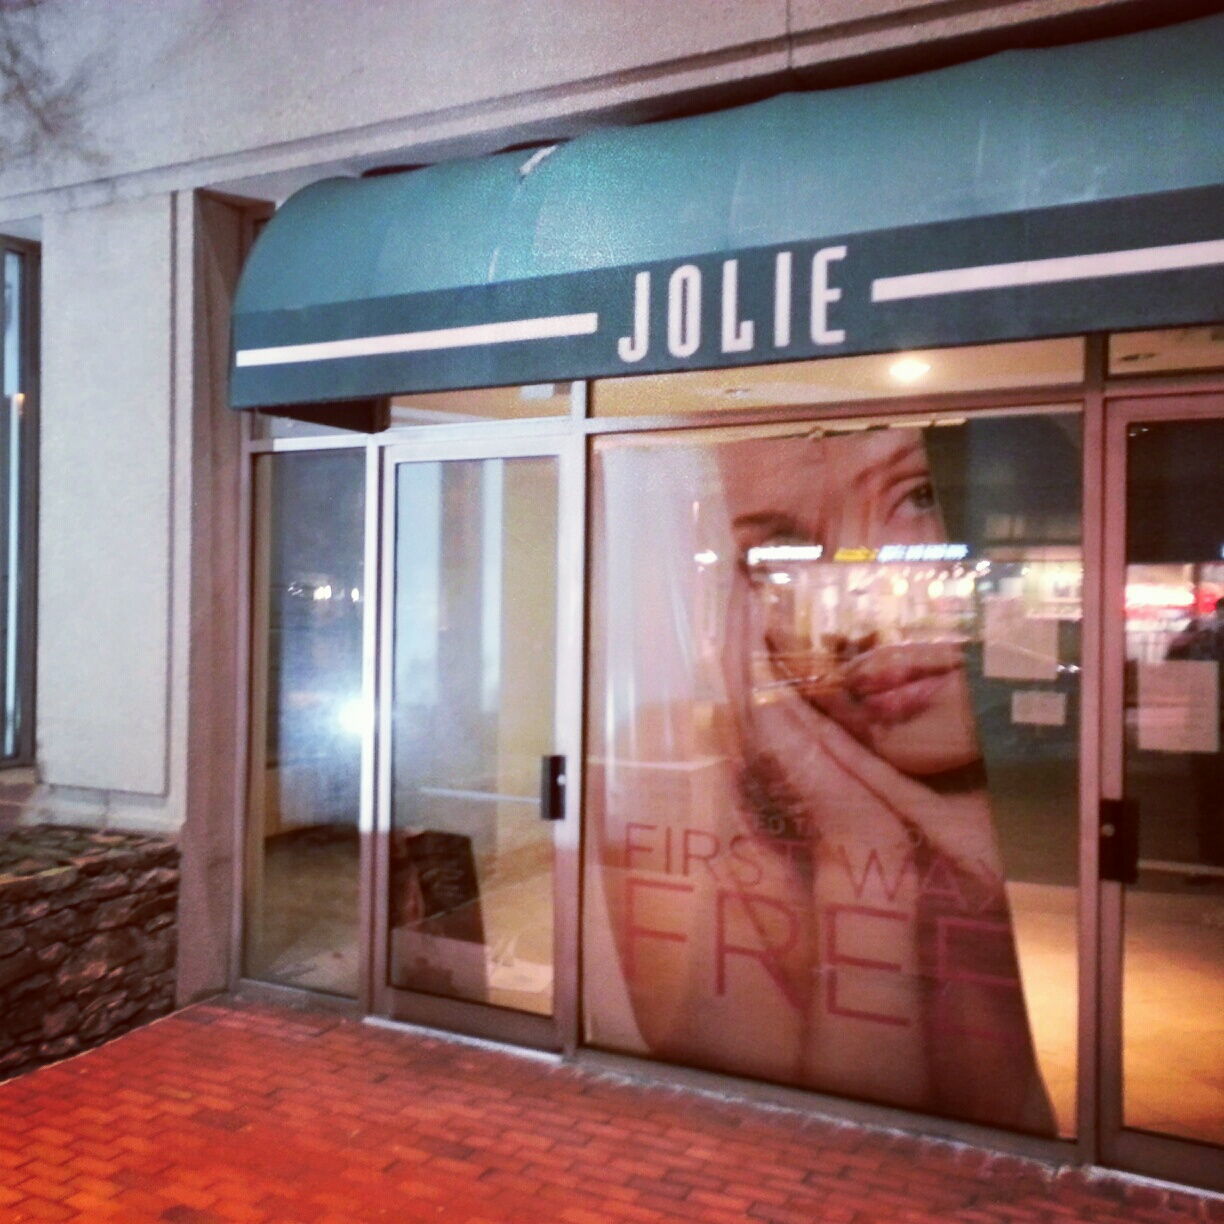 Robert Dyer Bethesda Row Jolie Day Spa Closed In Bethesda